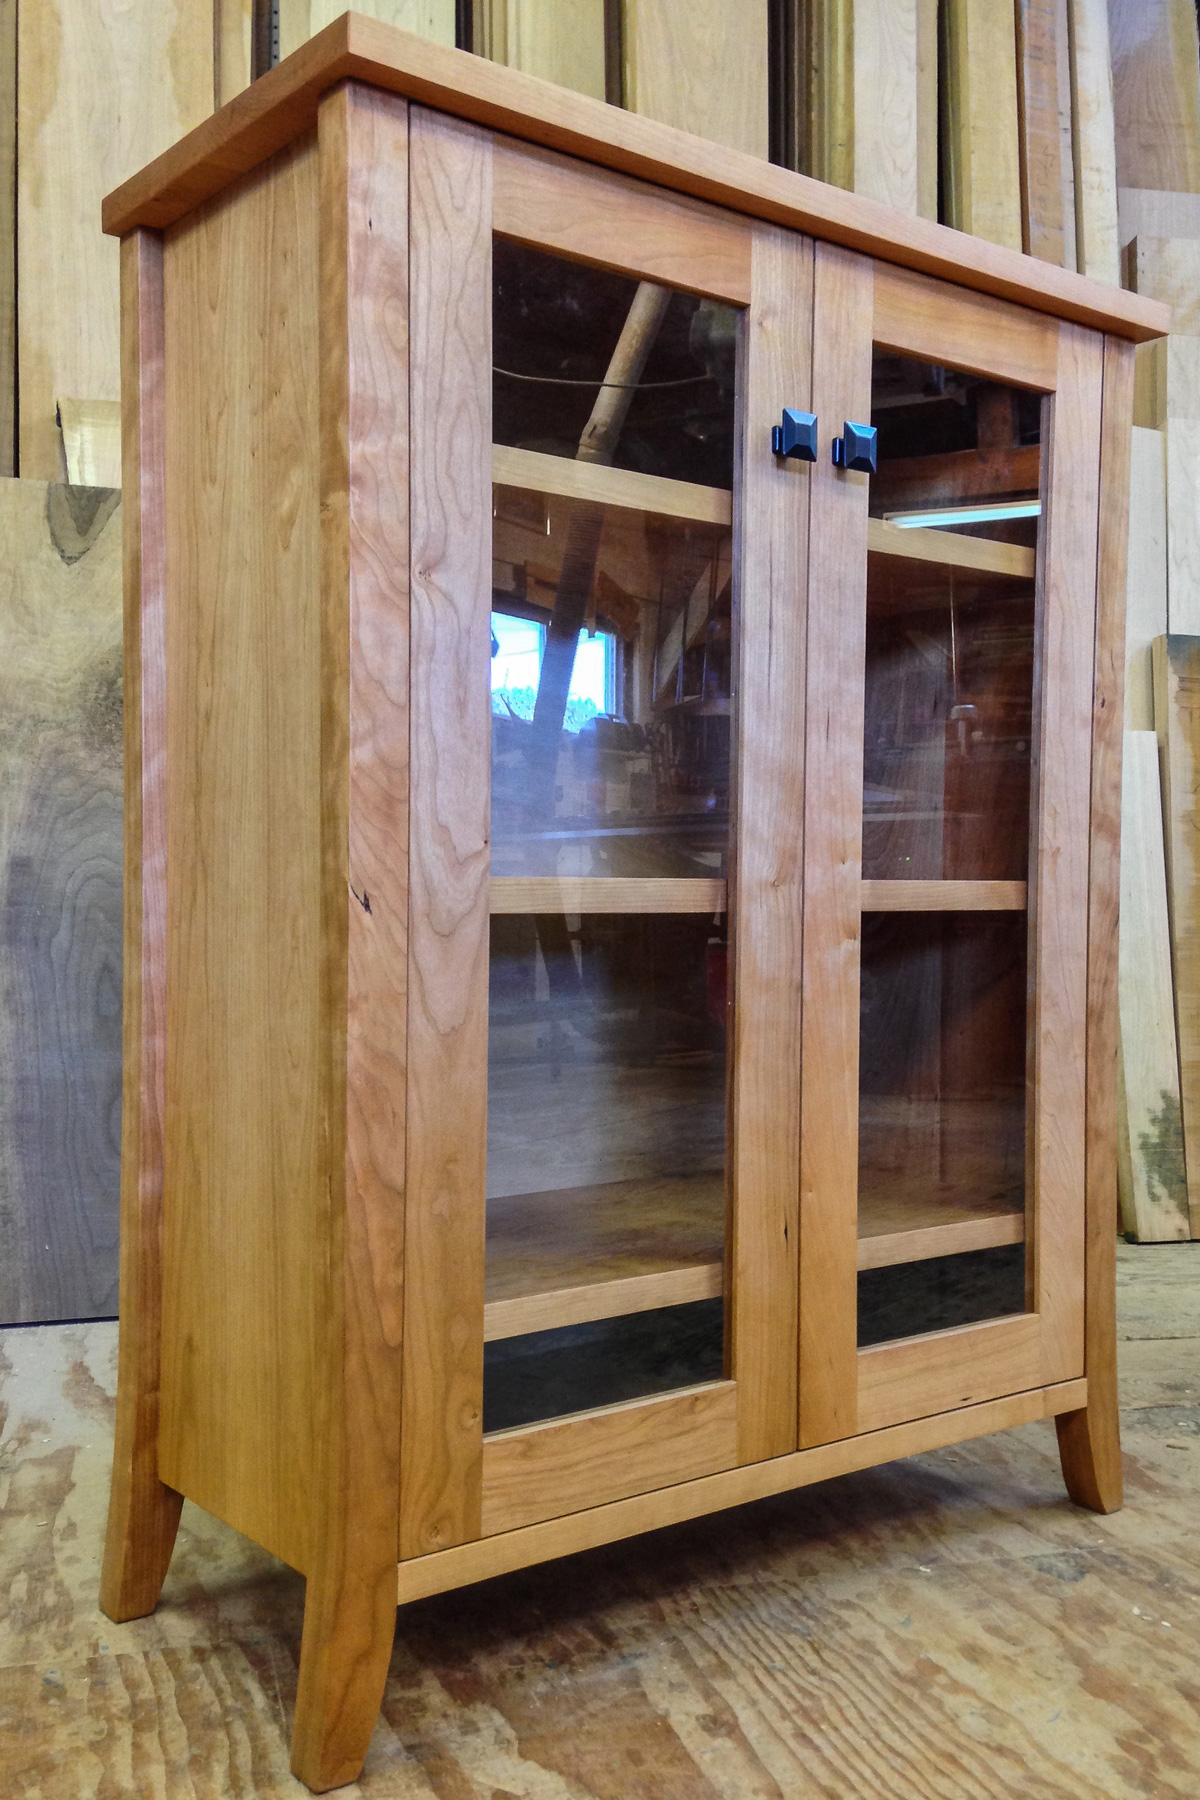 Custom cherry cabinet with adjustable shelves and glass doors.